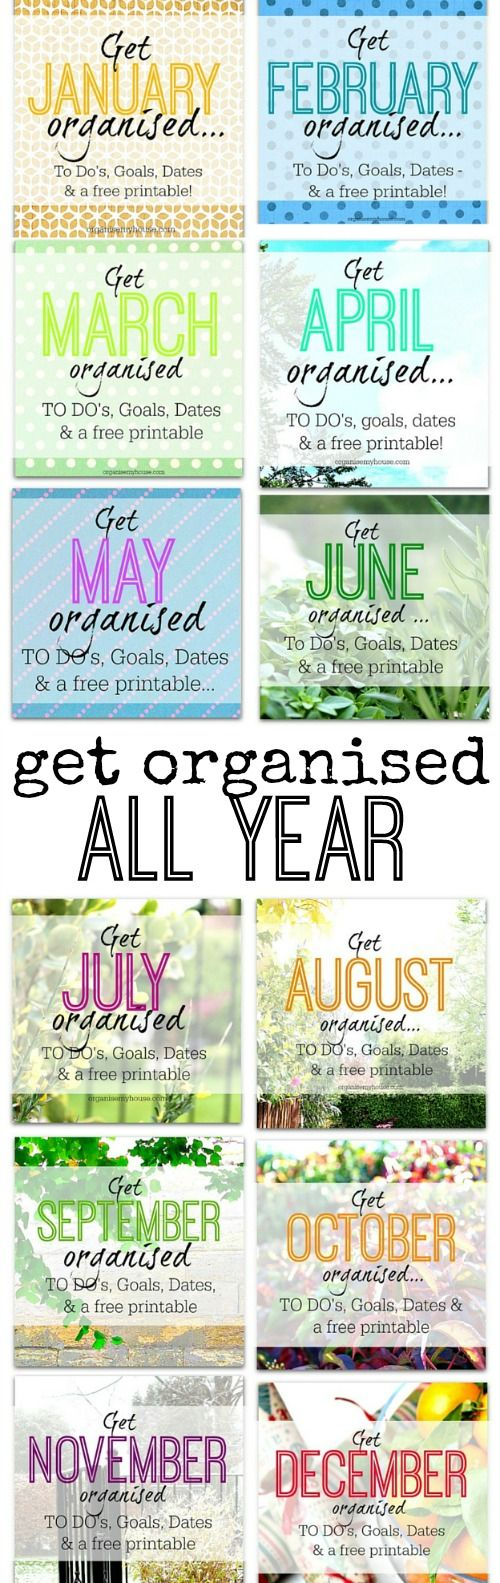 How to be organised this year - month by month tips